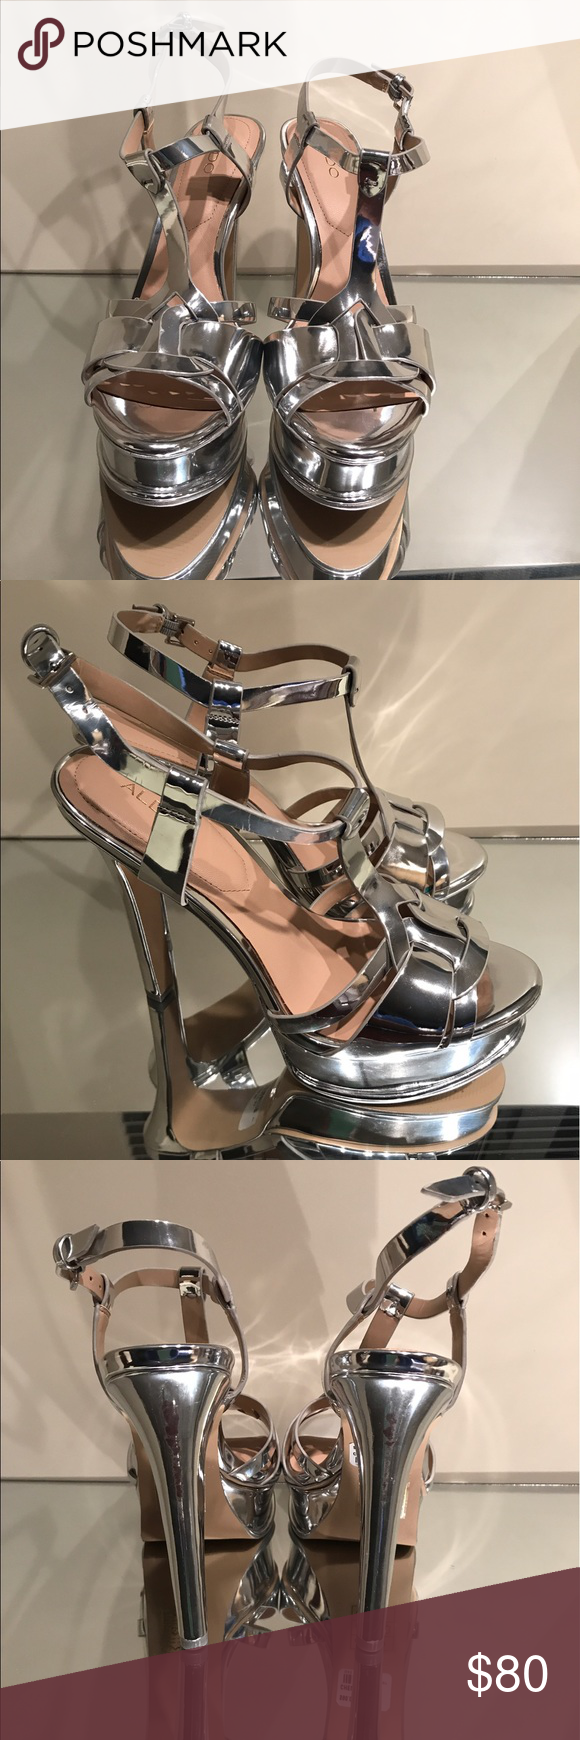 c58c89cbc11 Aldo Silver Platform Chelly Tribute Sandals Perfect dupe for YSL tribute  Sandals without the hefty price tag Aldo Shoes Heels